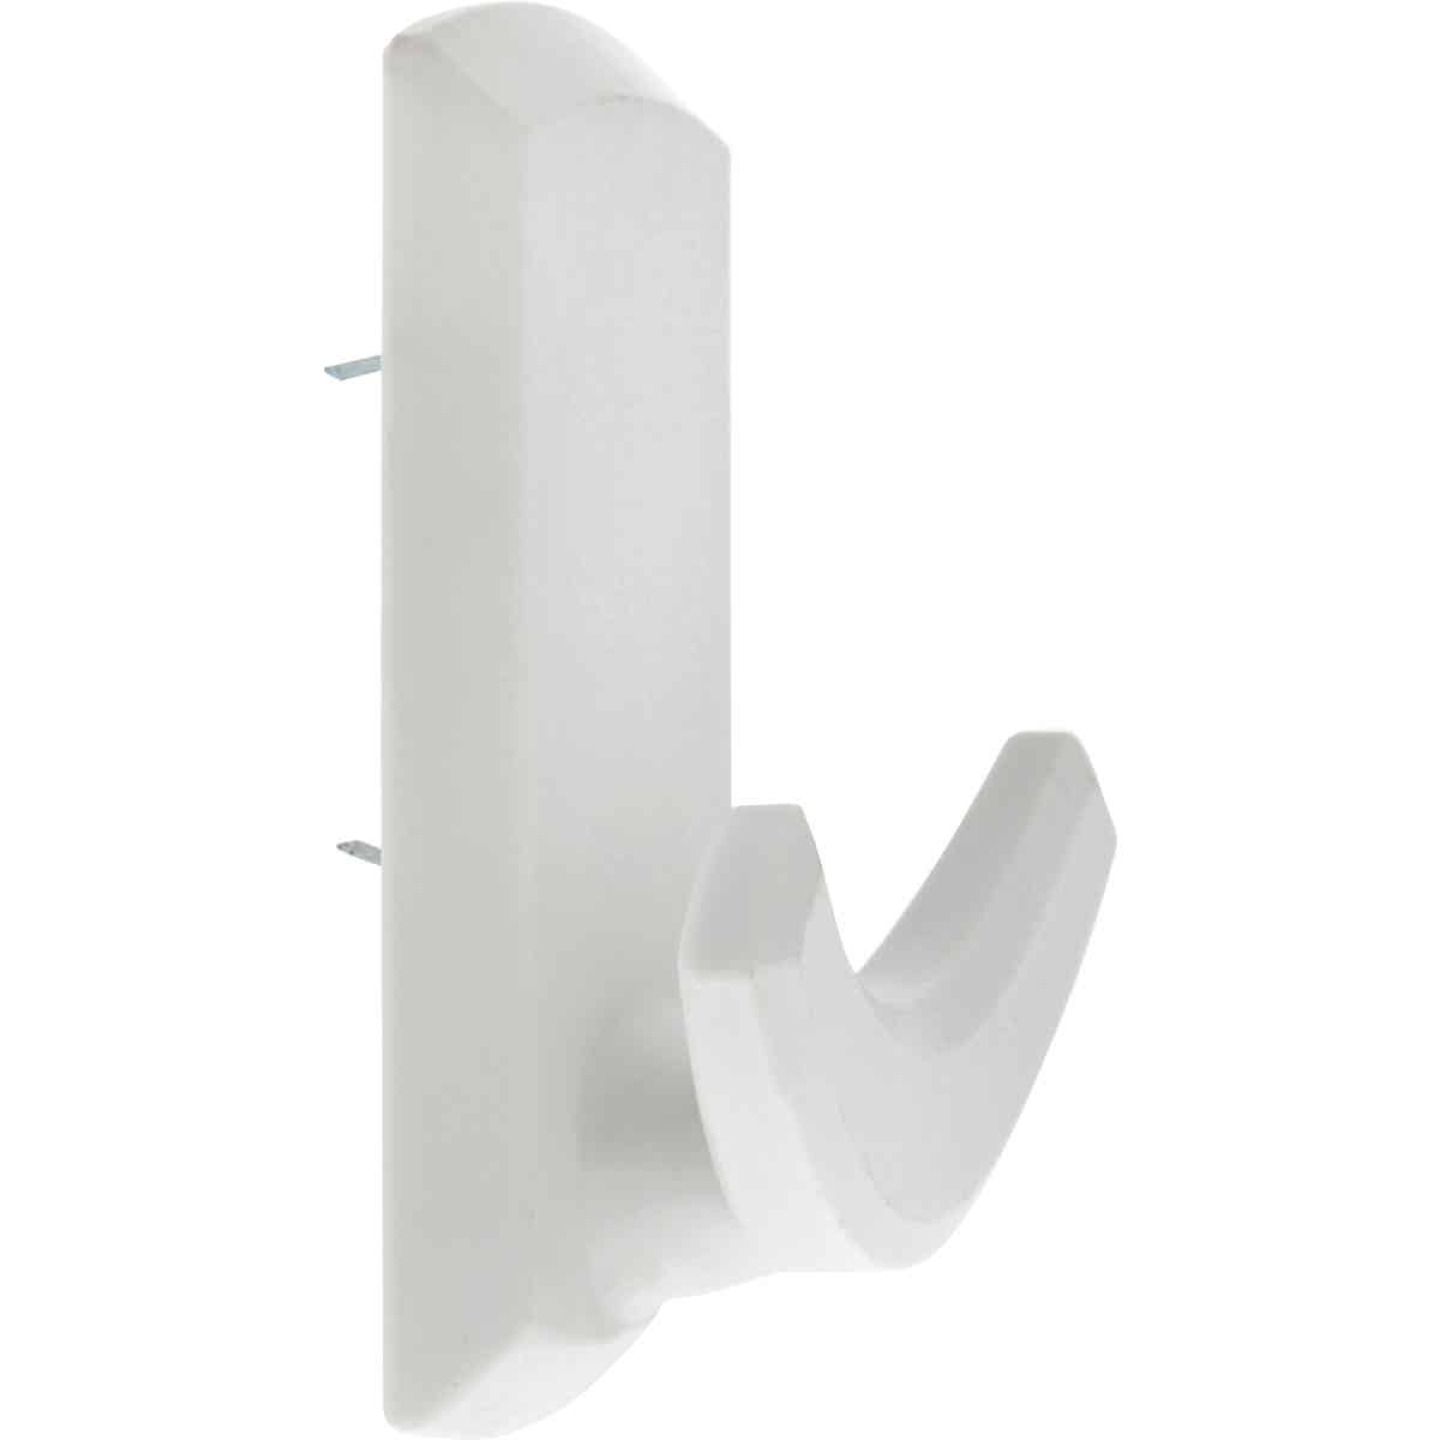 Hillman High and Mighty 20 Lb. Capacity White Rectangular Decorative Double Hook Image 1